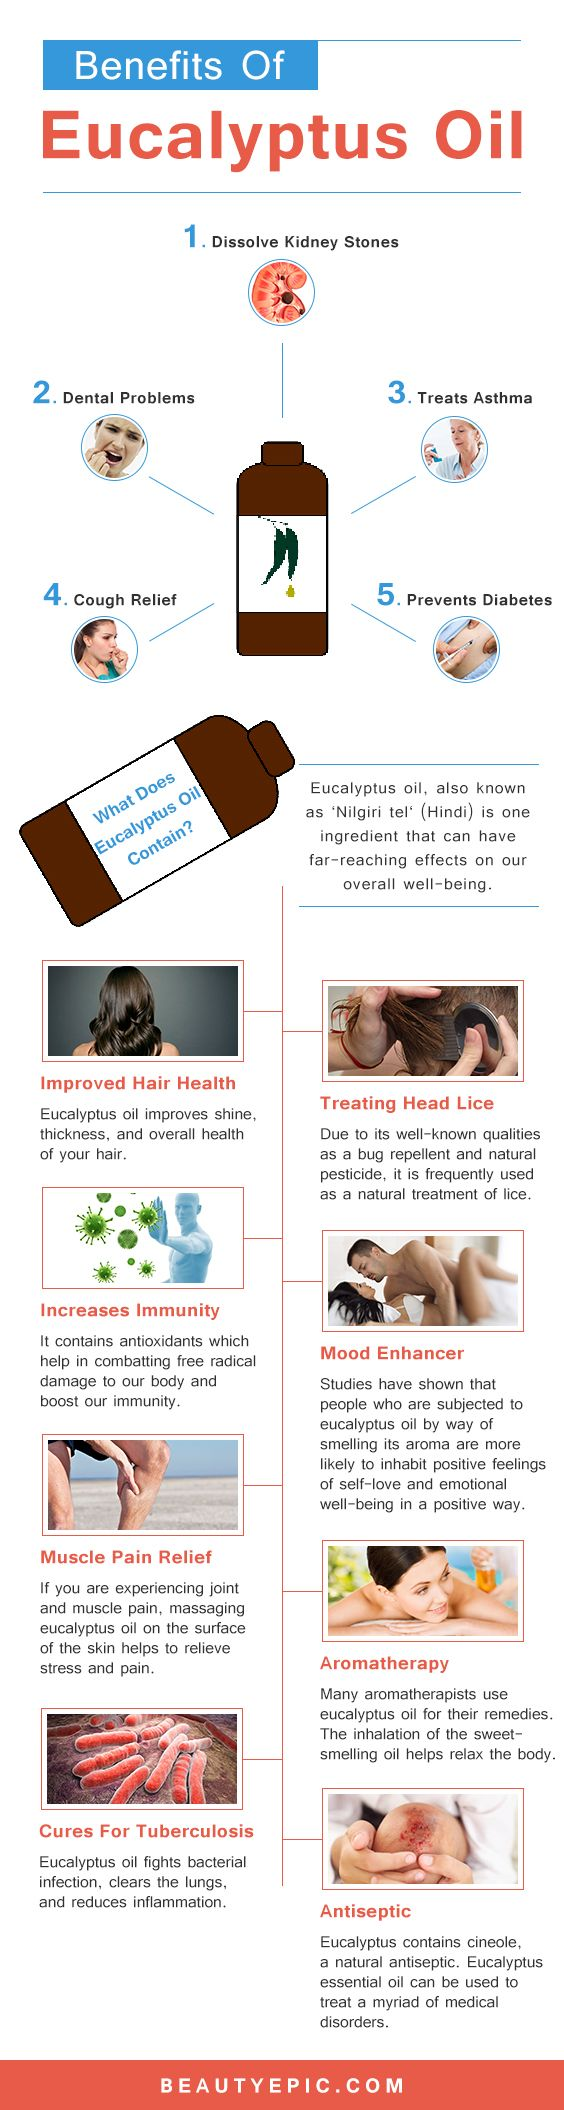 Top 20 Uses and Benefits of Eucalyptus Oil